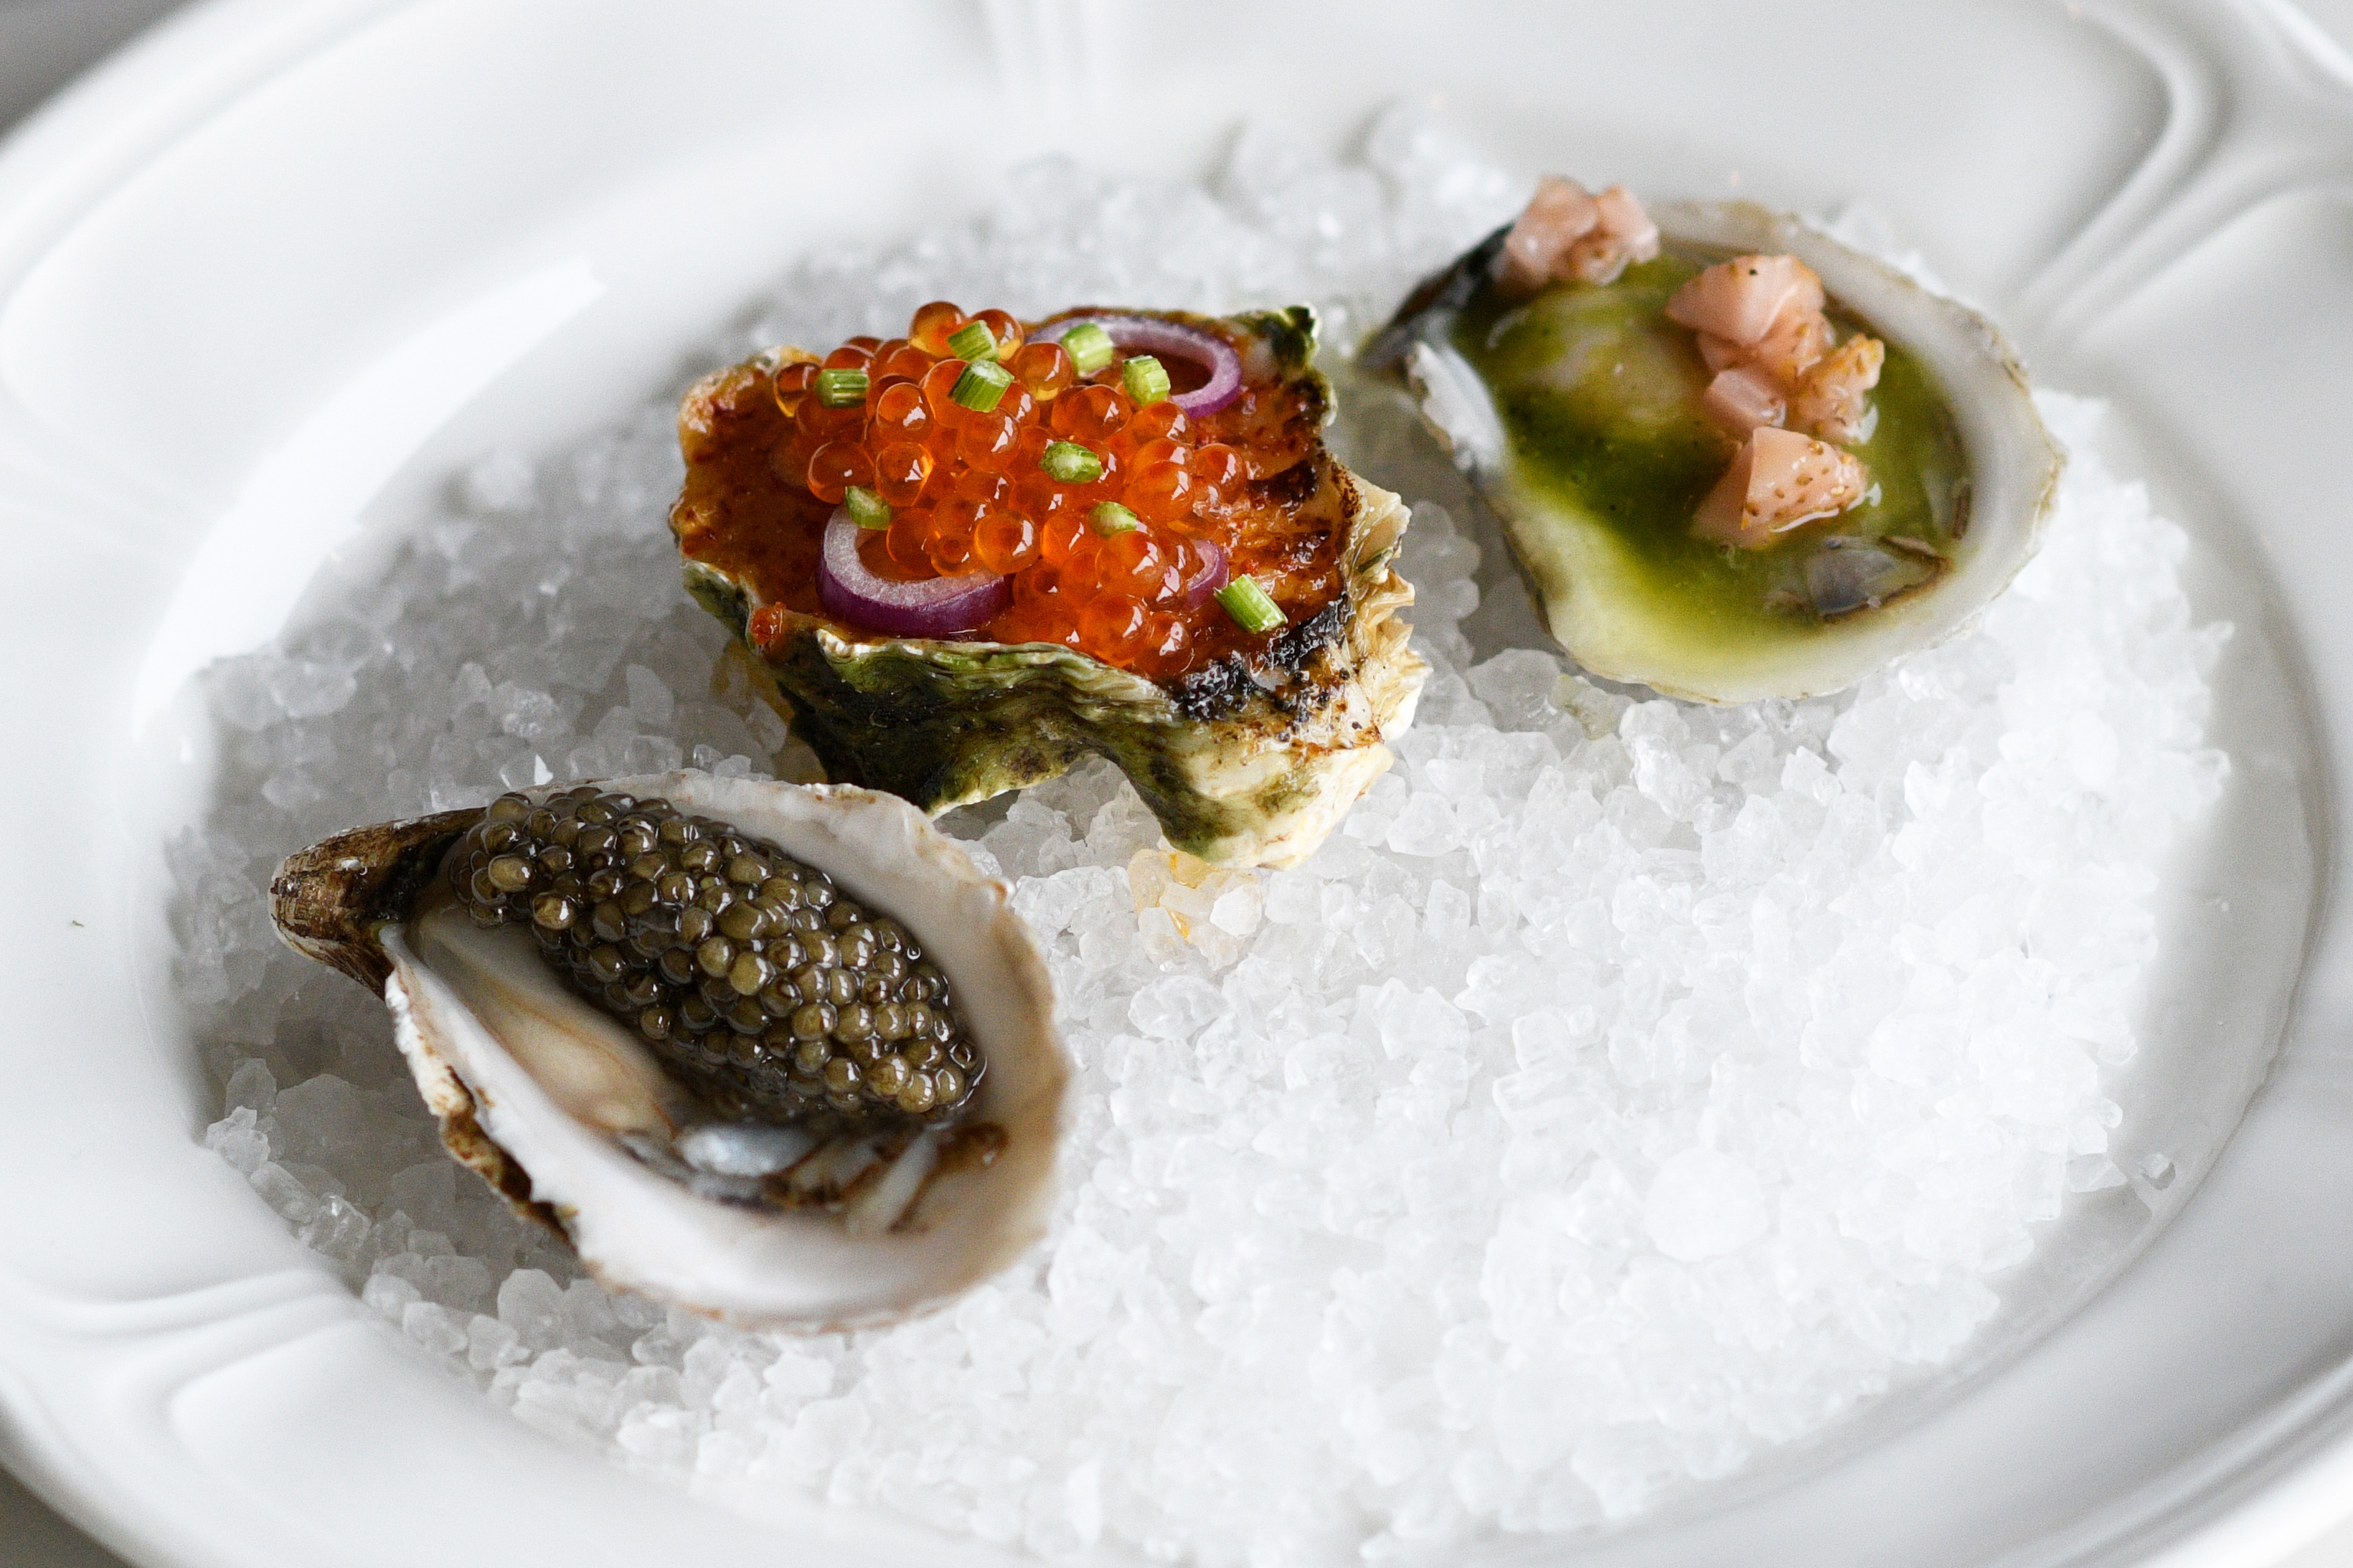 oyster deals chicago 2019